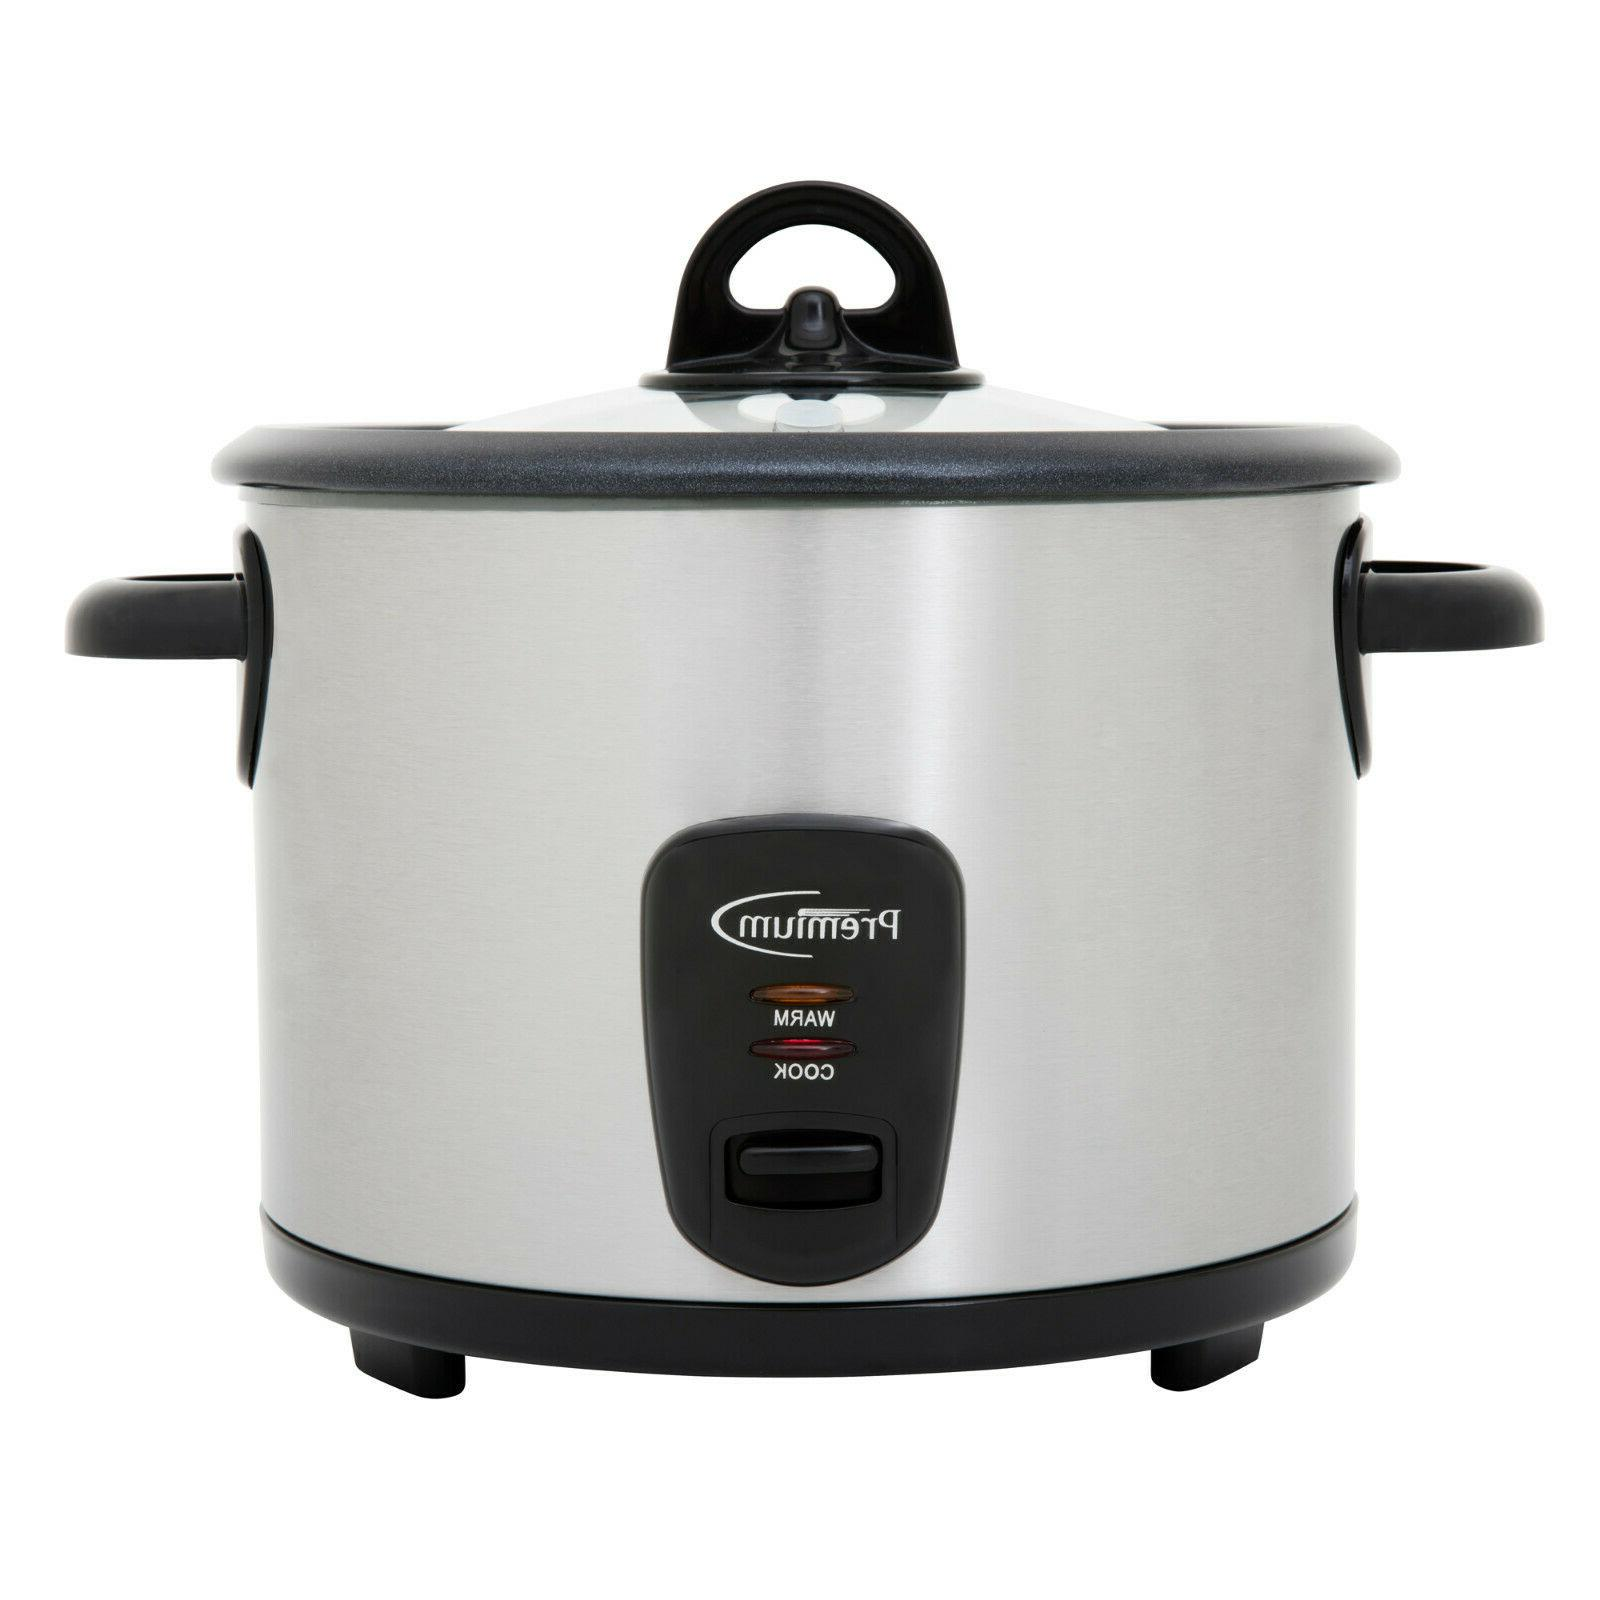 16 cup rice cooker stainless steel glass